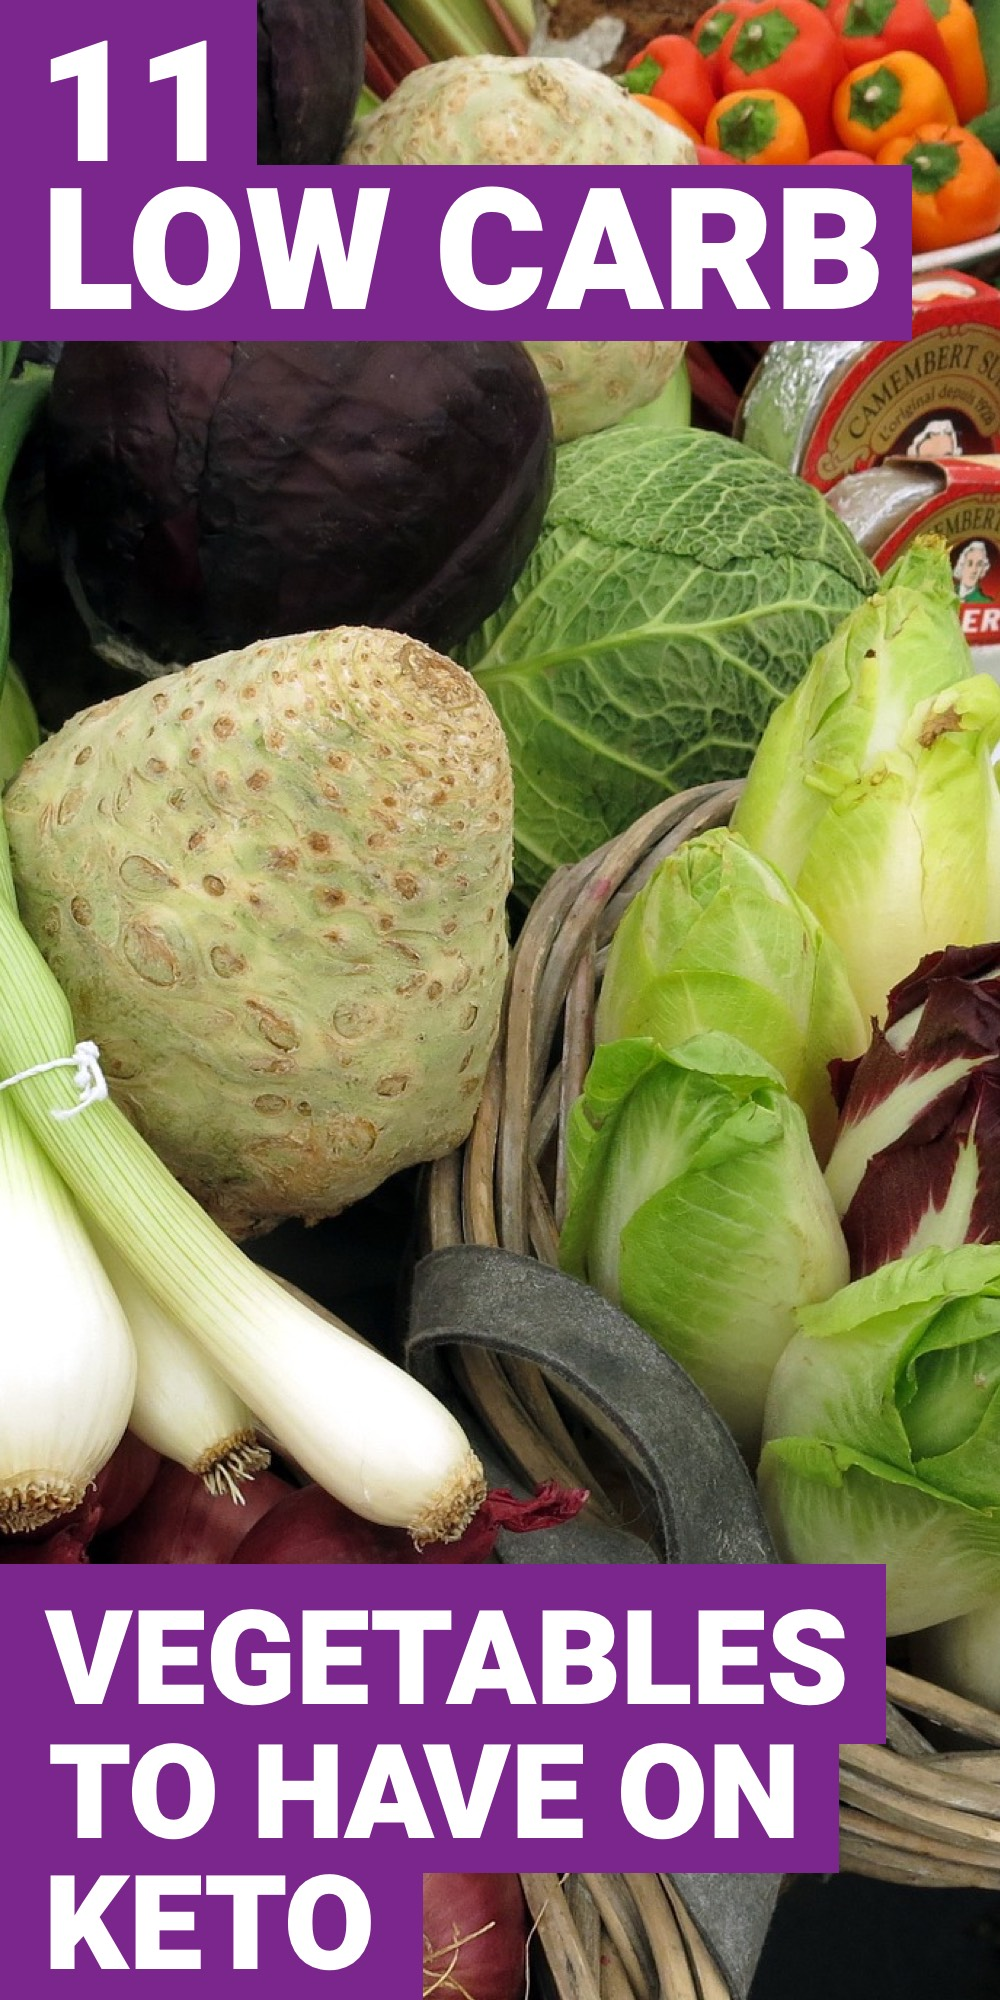 Trying to figure out which vegetables you can eat on the ketogenic diet? These are the ones that will keep you in ketosis while doing keto.